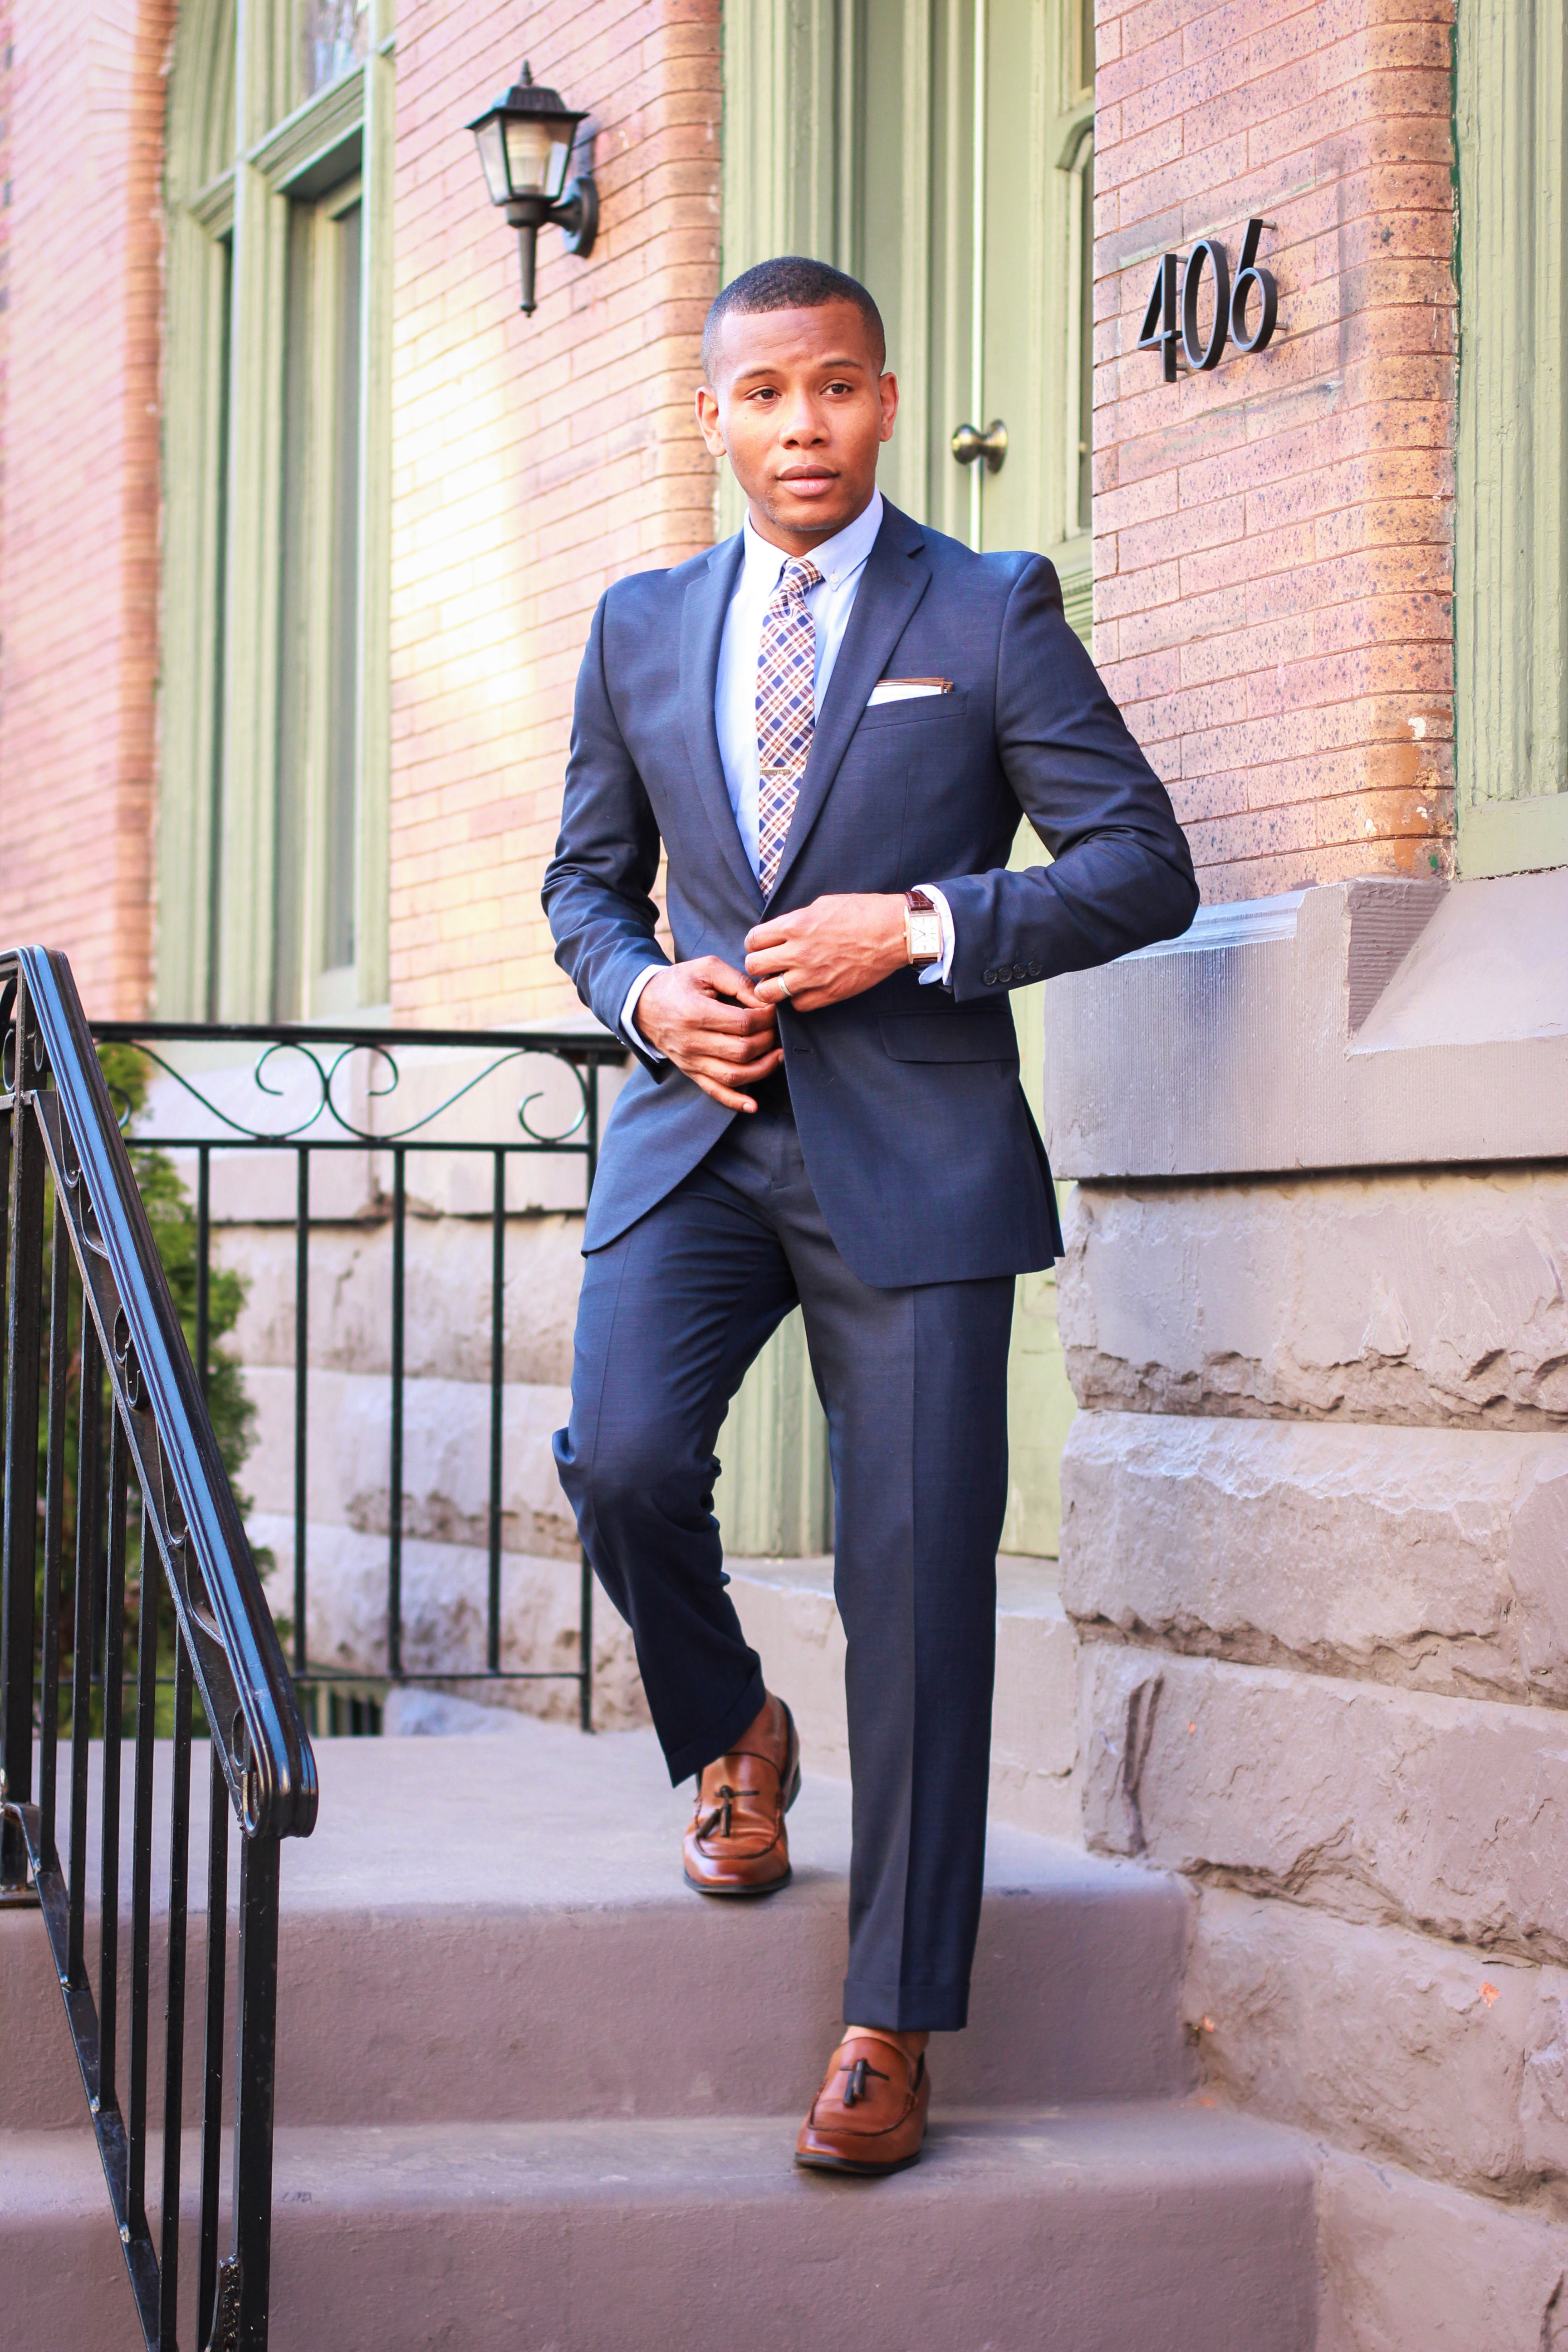 Sabir M. Peele of Men's Style Pro in Bar III Midnight Blue Suit For Macy's #Sponsored